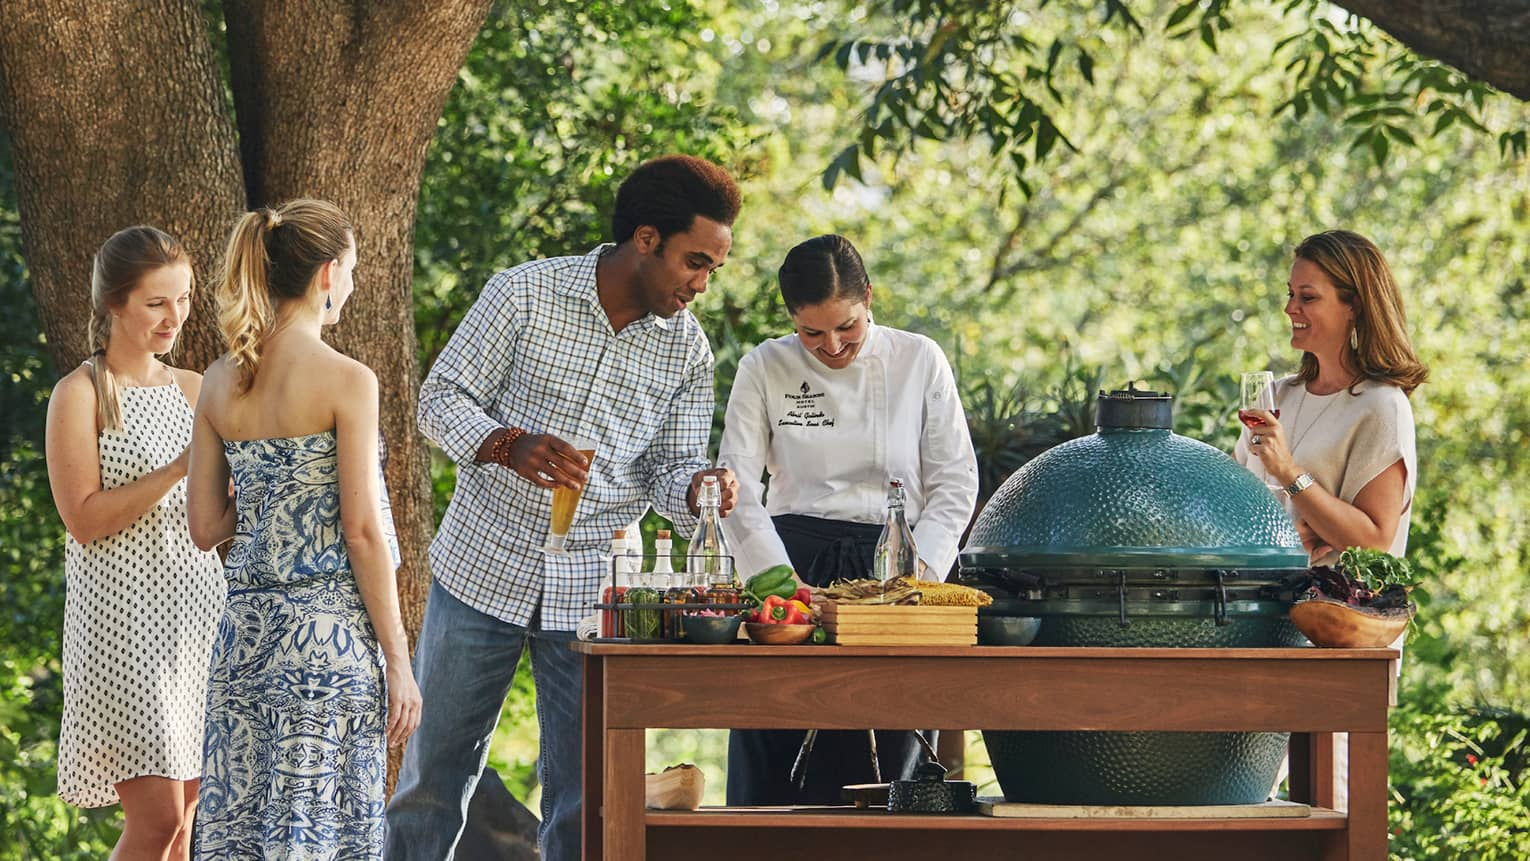 Group of friends watch as chef prepares meal at outdoor garden barbecue